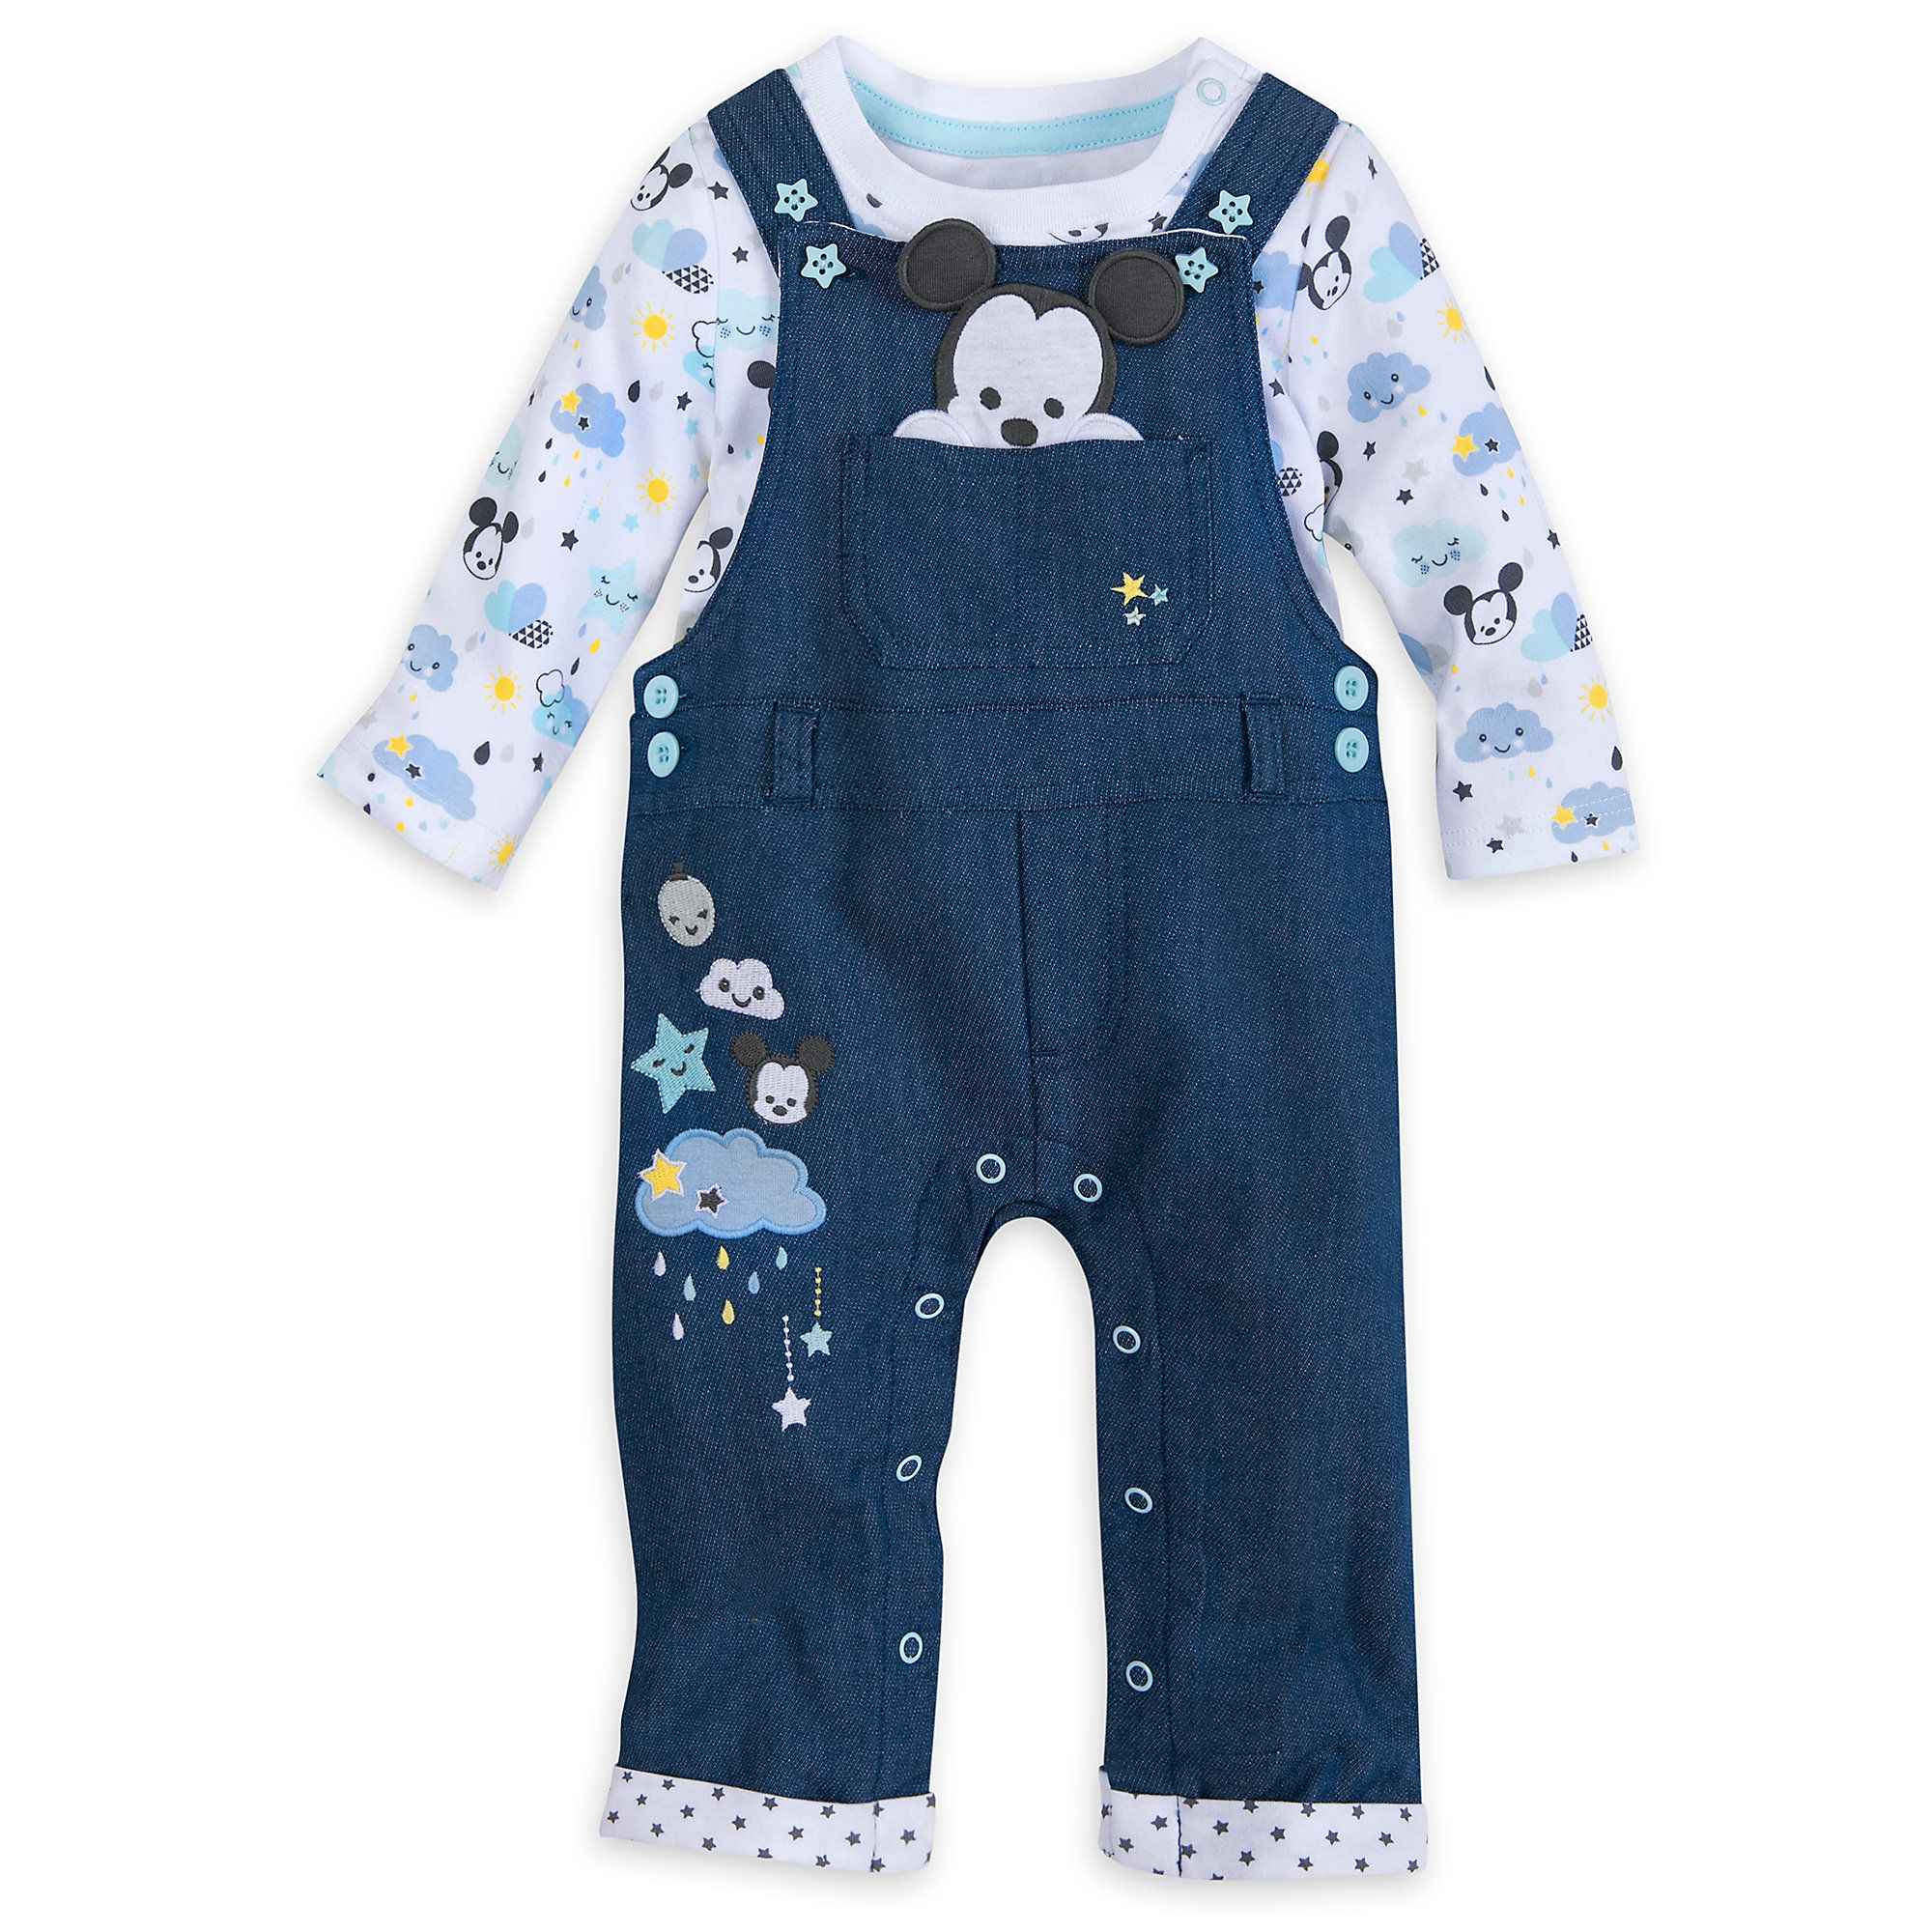 88a0eeed9 Mickey Mouse Dungaree Set for Baby